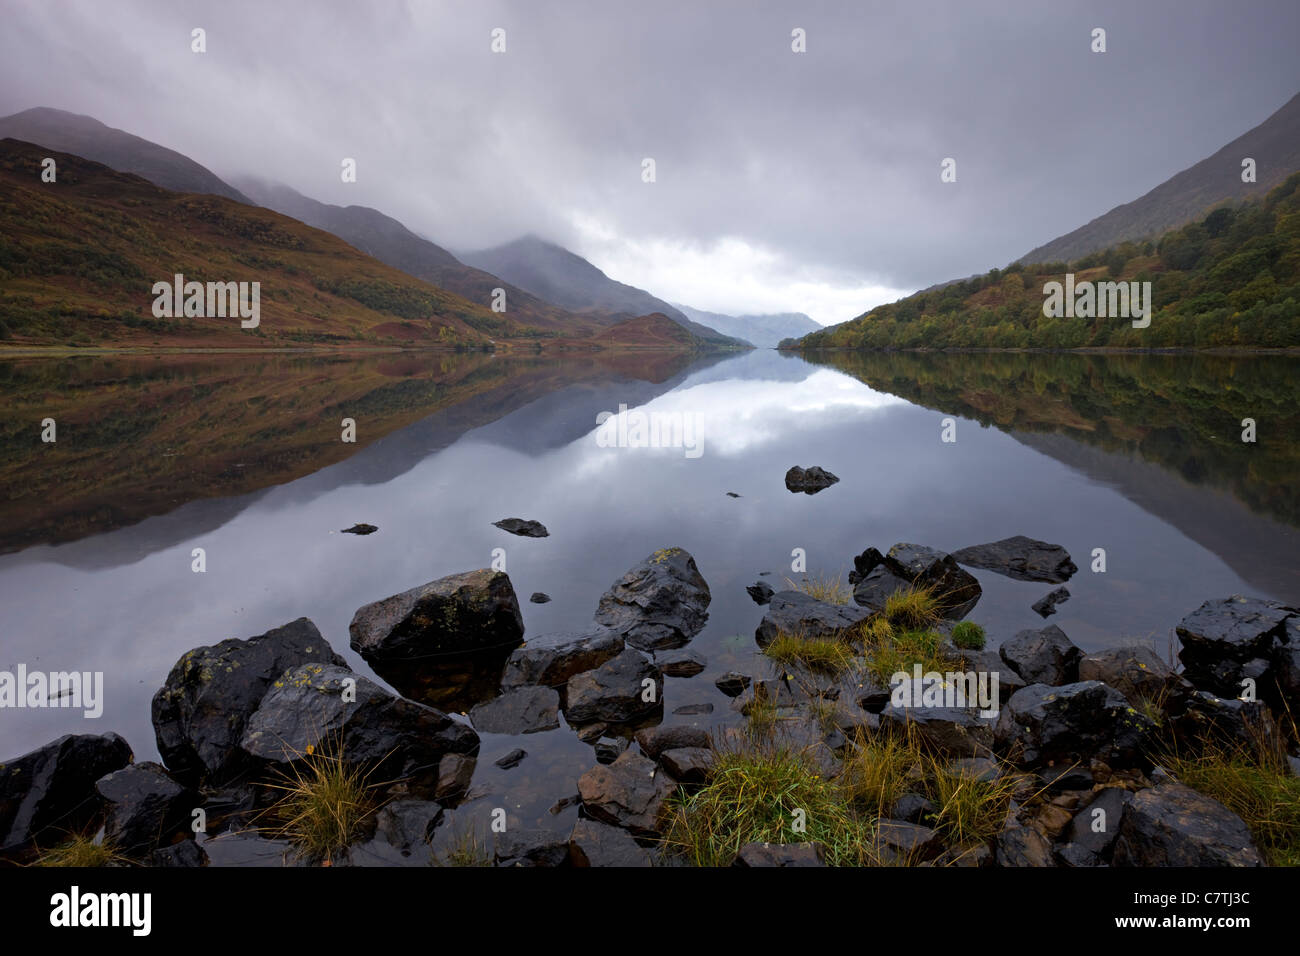 Loch Leven on a stormy day, Highlands, Scotland. Autumn (October) 2008 - Stock Image